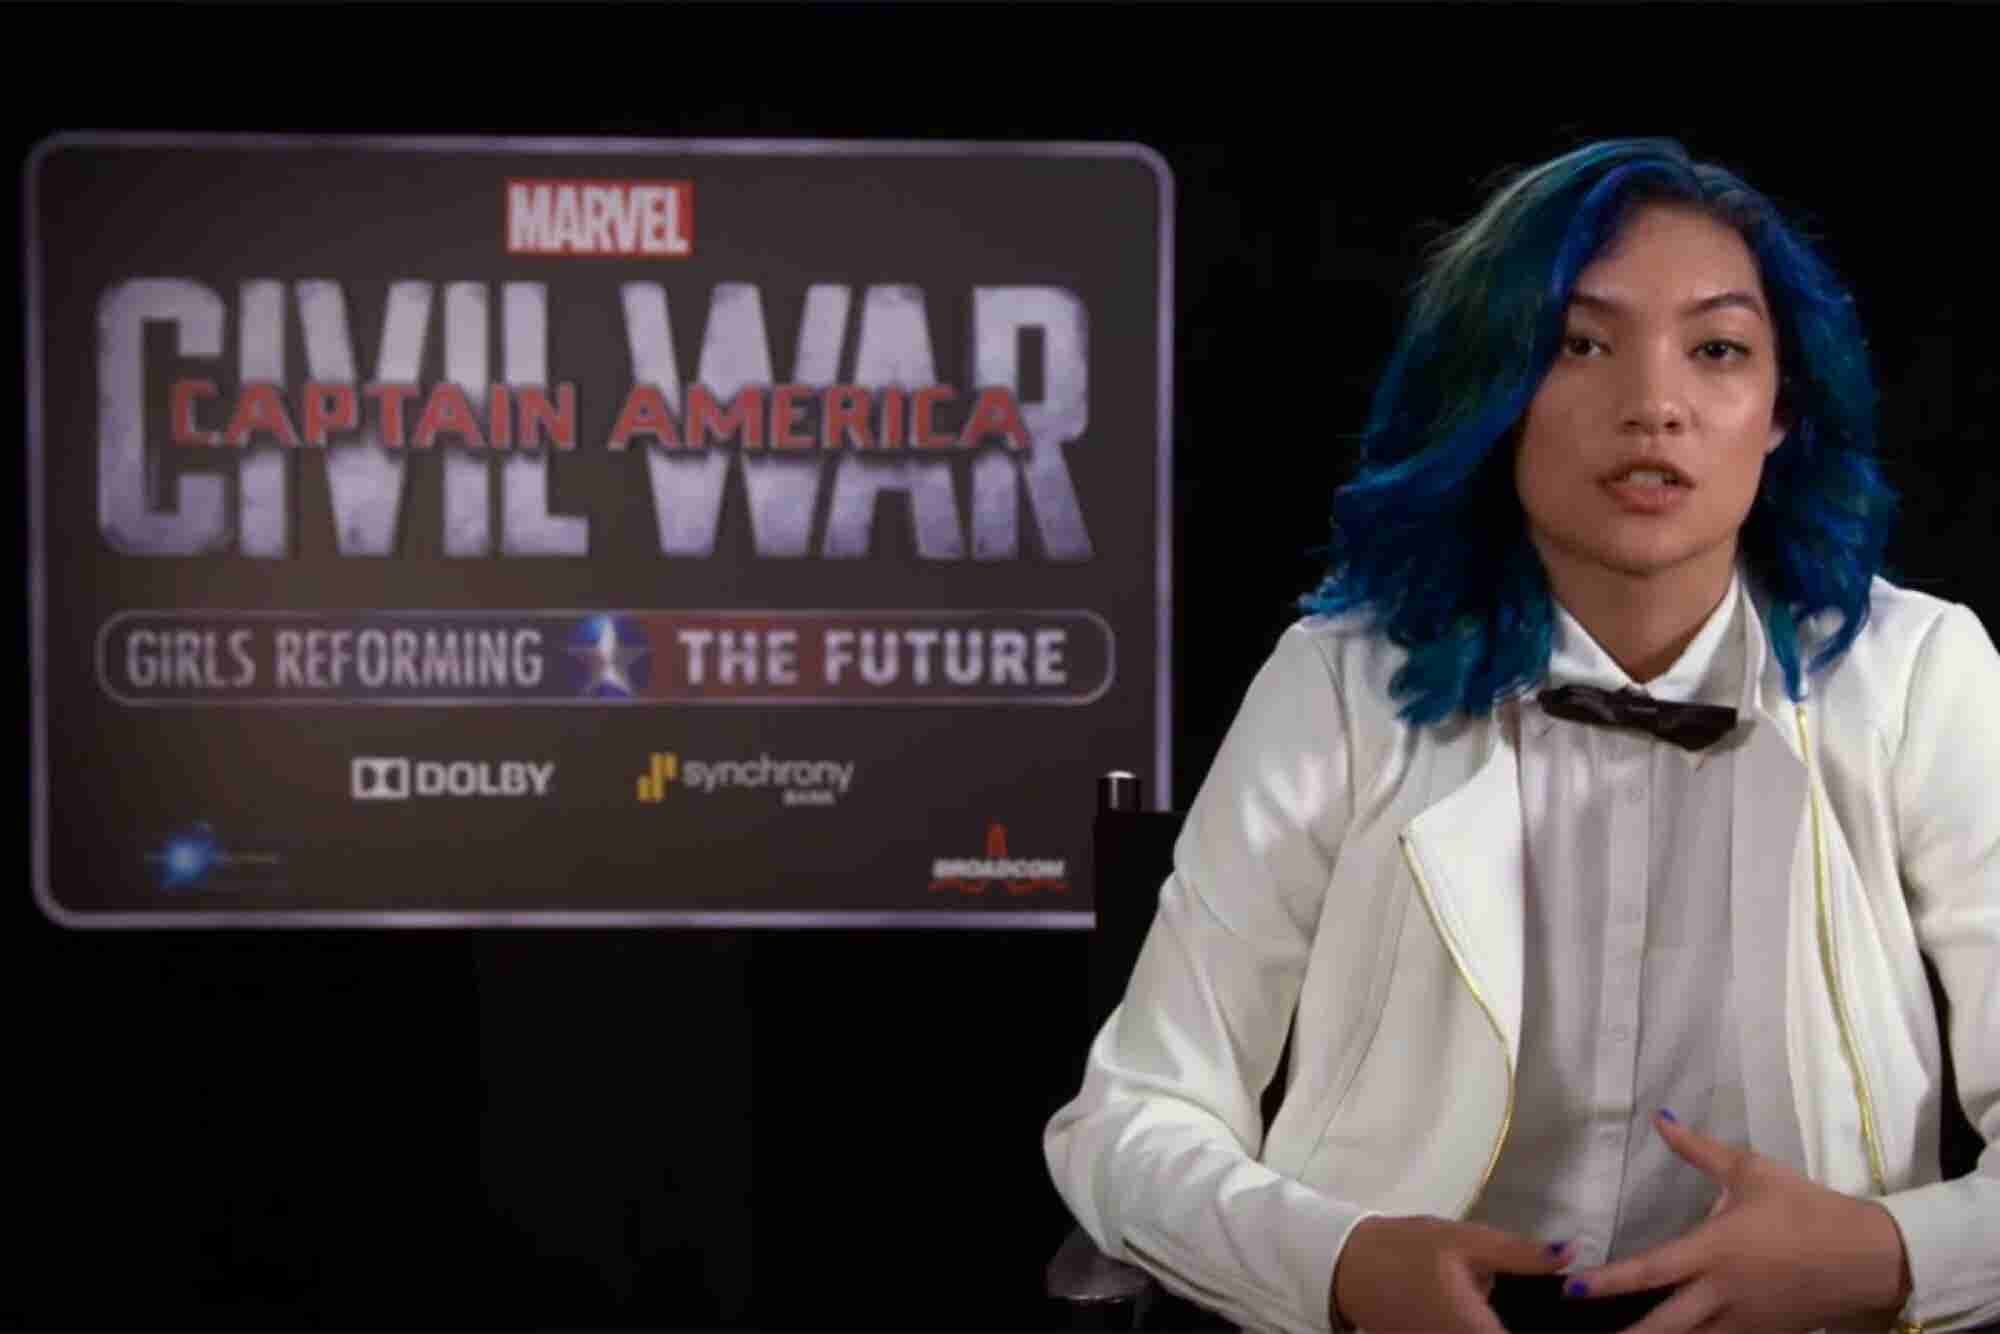 Meet the Young Women Marvel Thinks Will Save the World